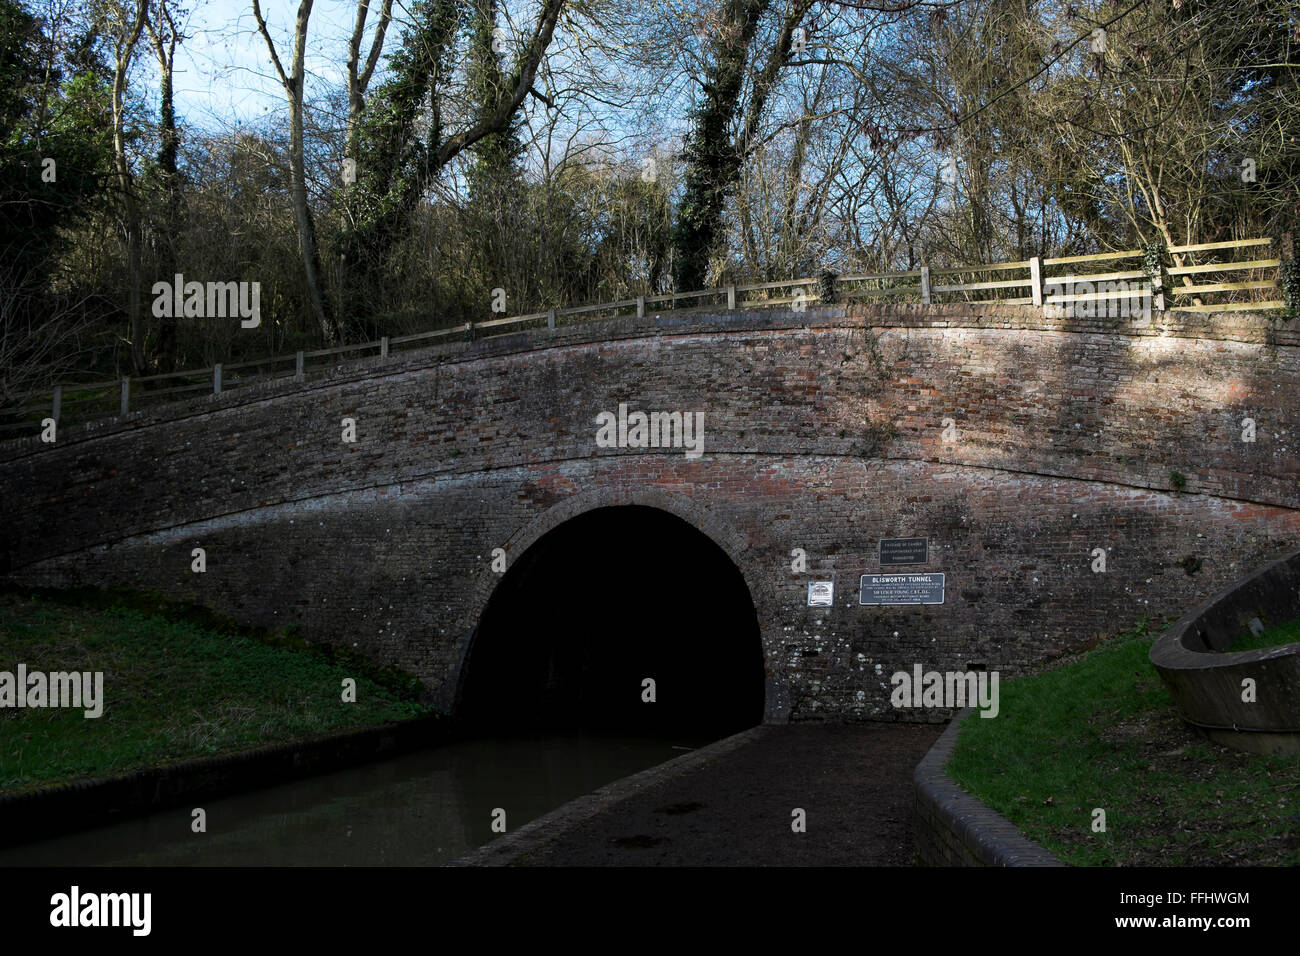 The entrance to Blisworth tunnel - Stock Image